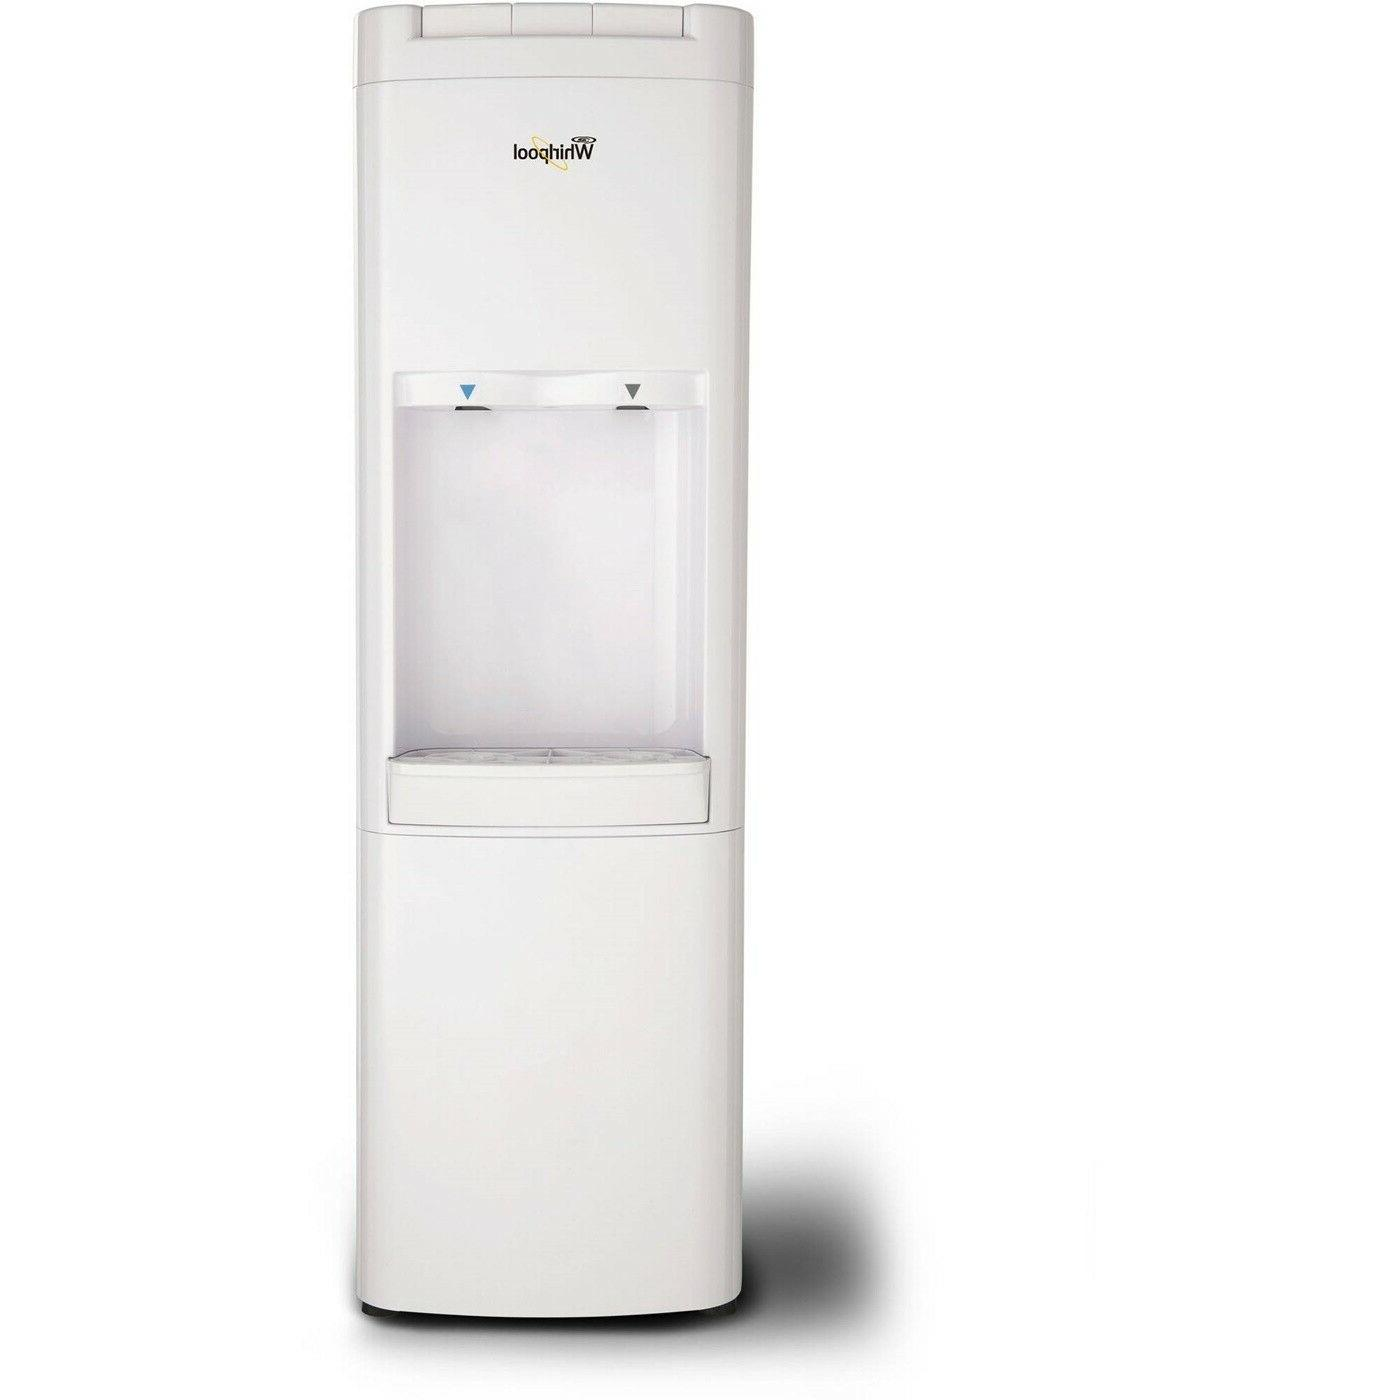 Whirlpool Water Chilled Water